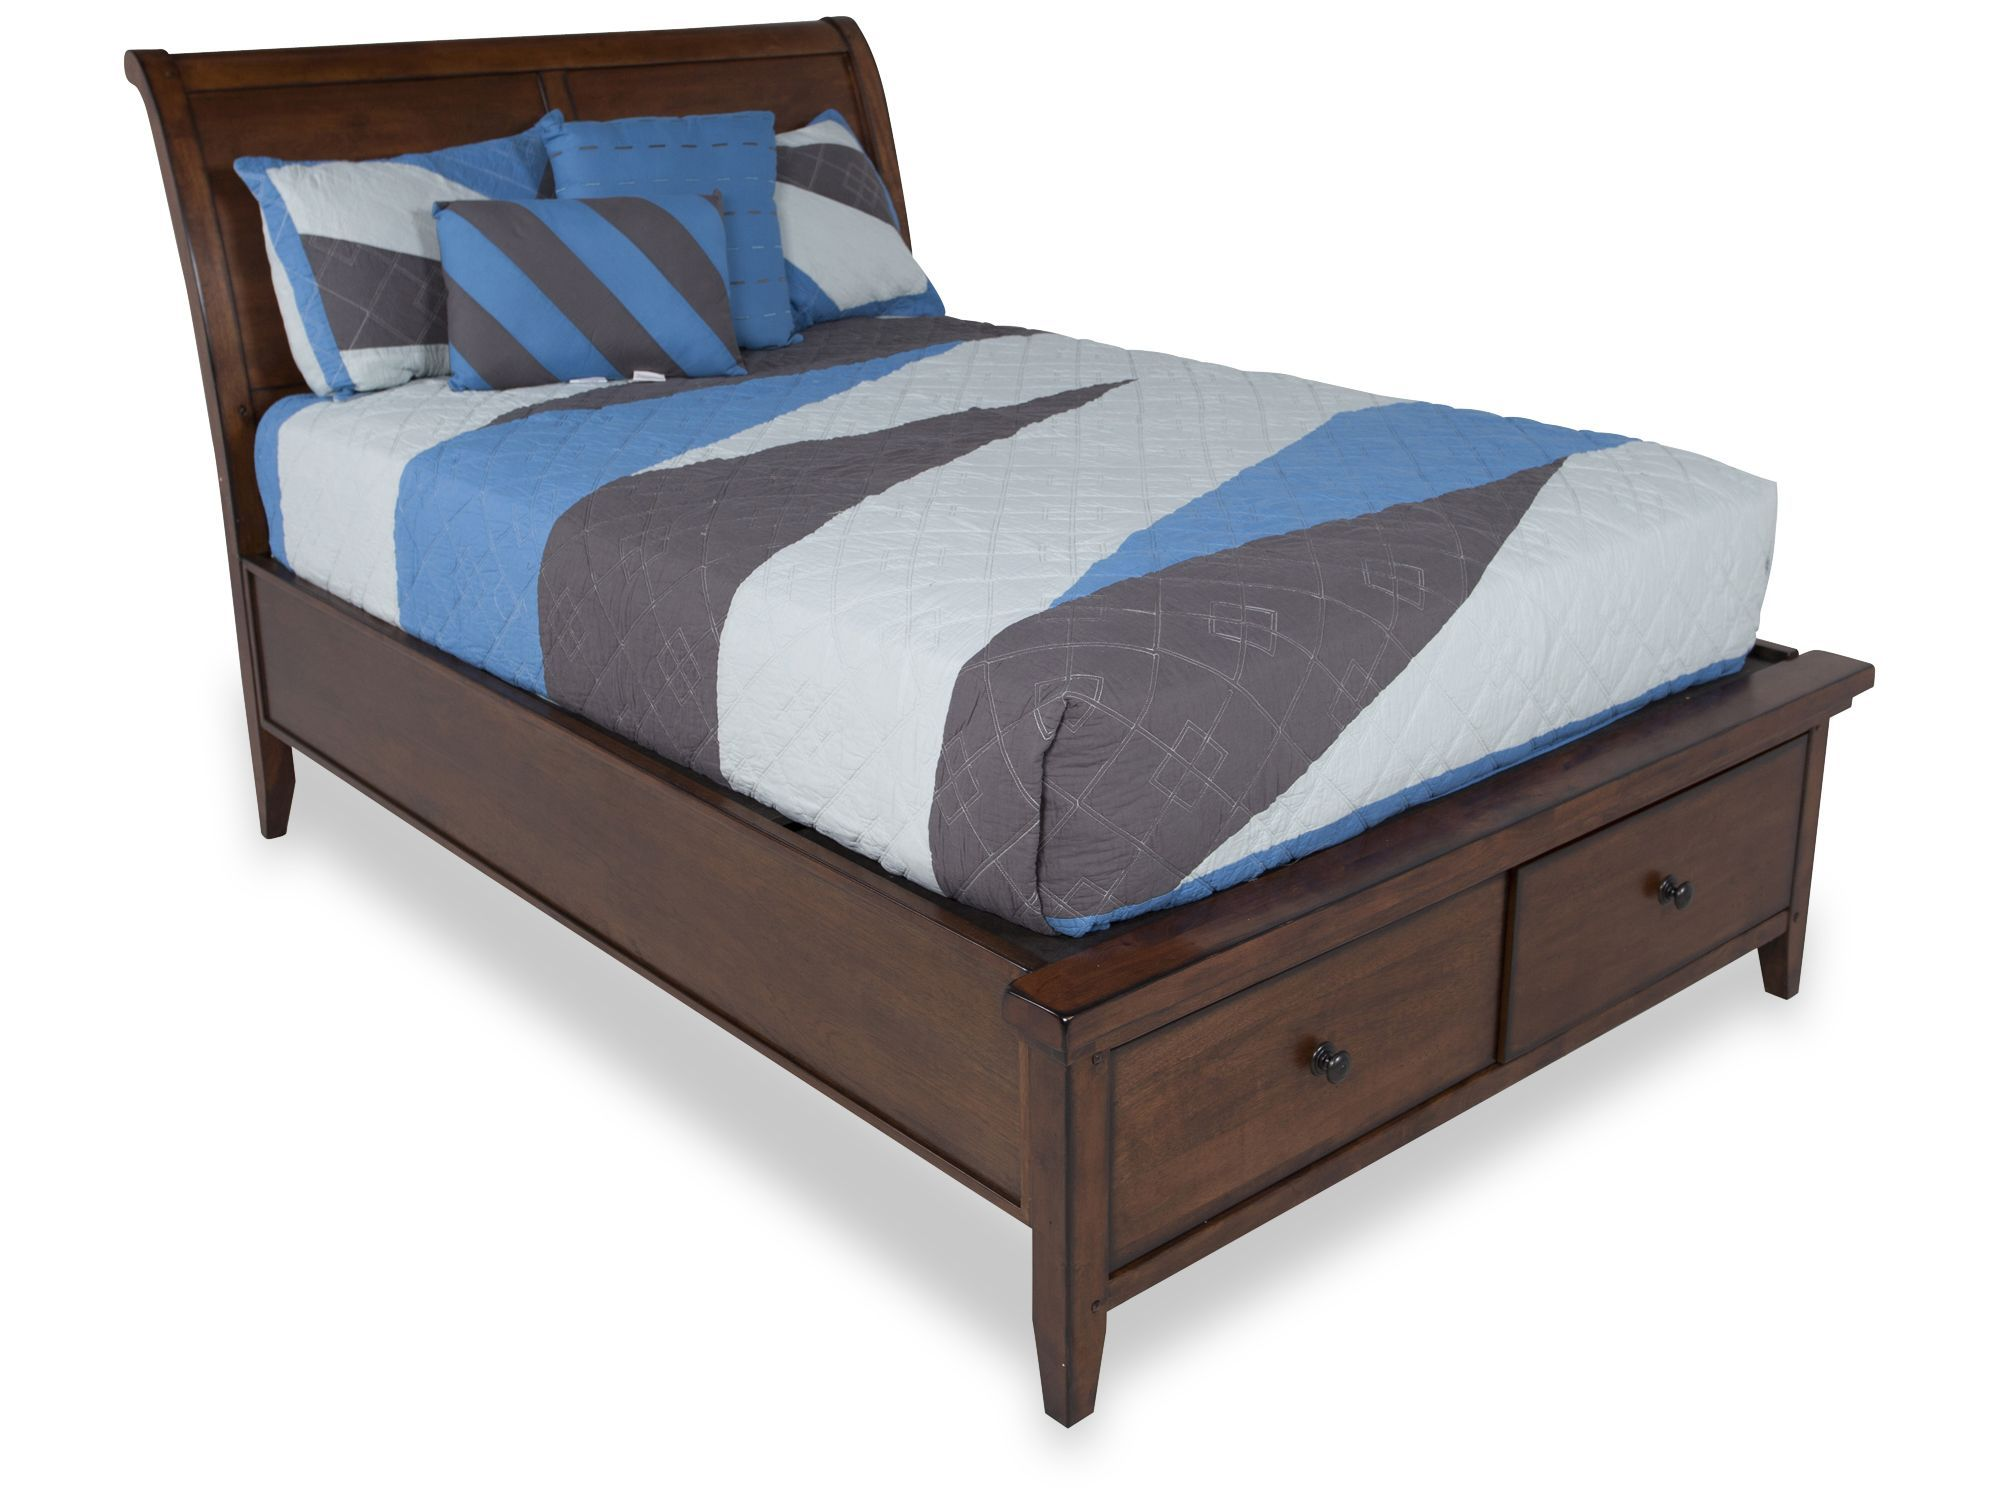 Aspen Cross Country Full Sleigh Storage Bed Storage bed